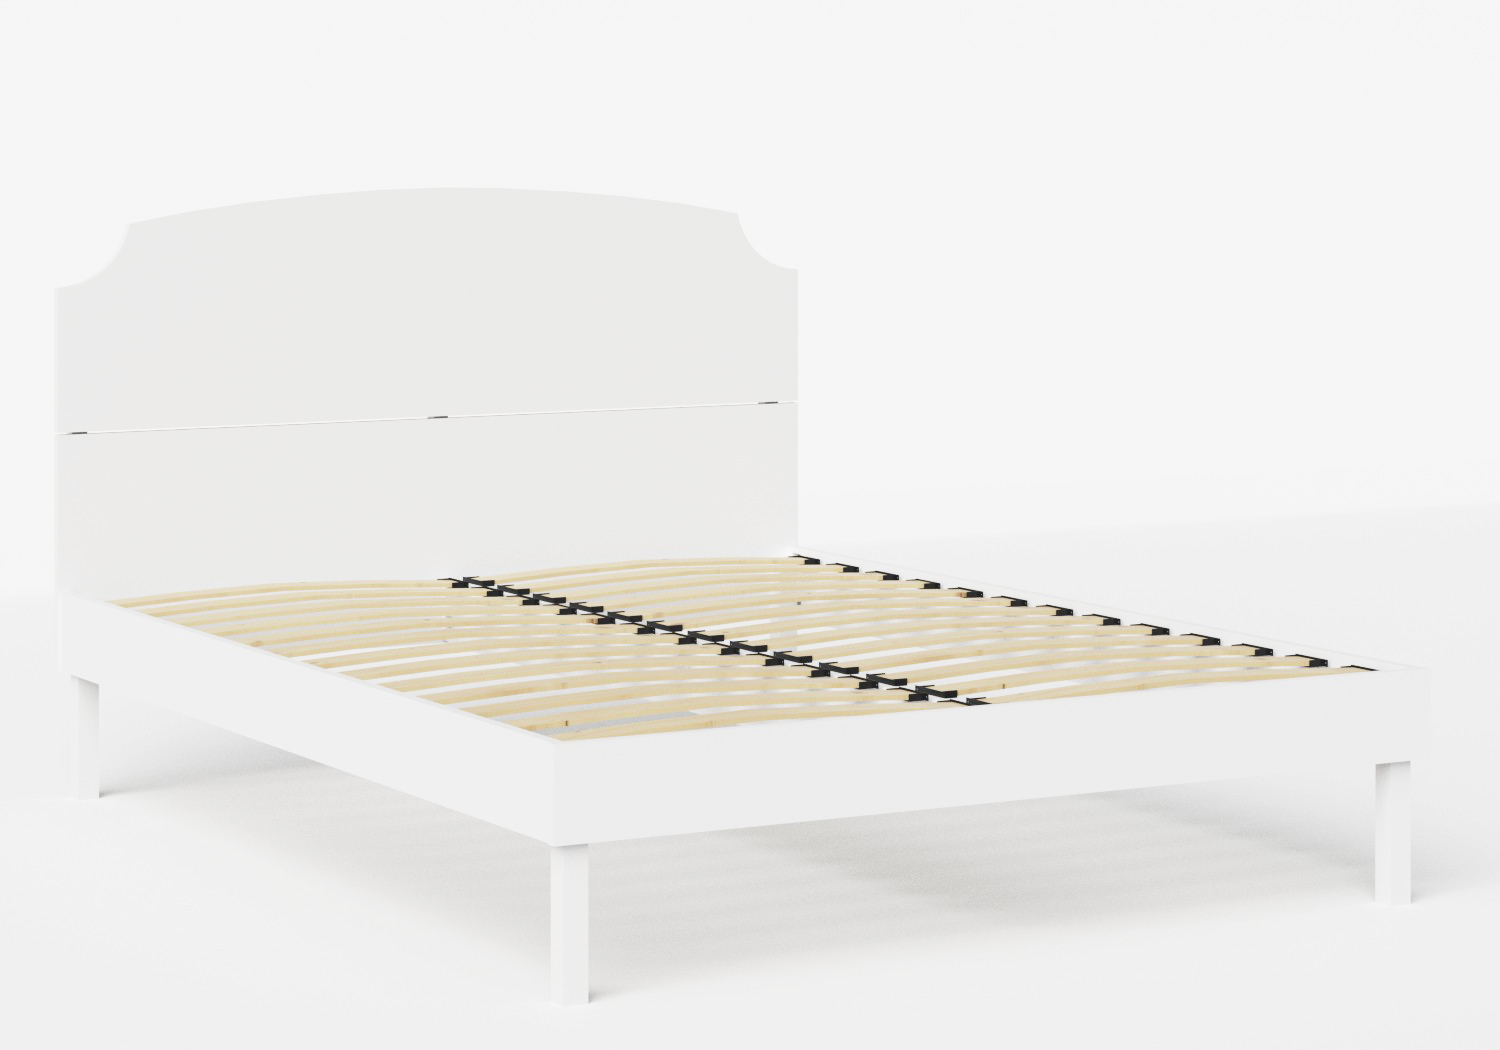 Kobe Wood Bed in White shown with slatted frame